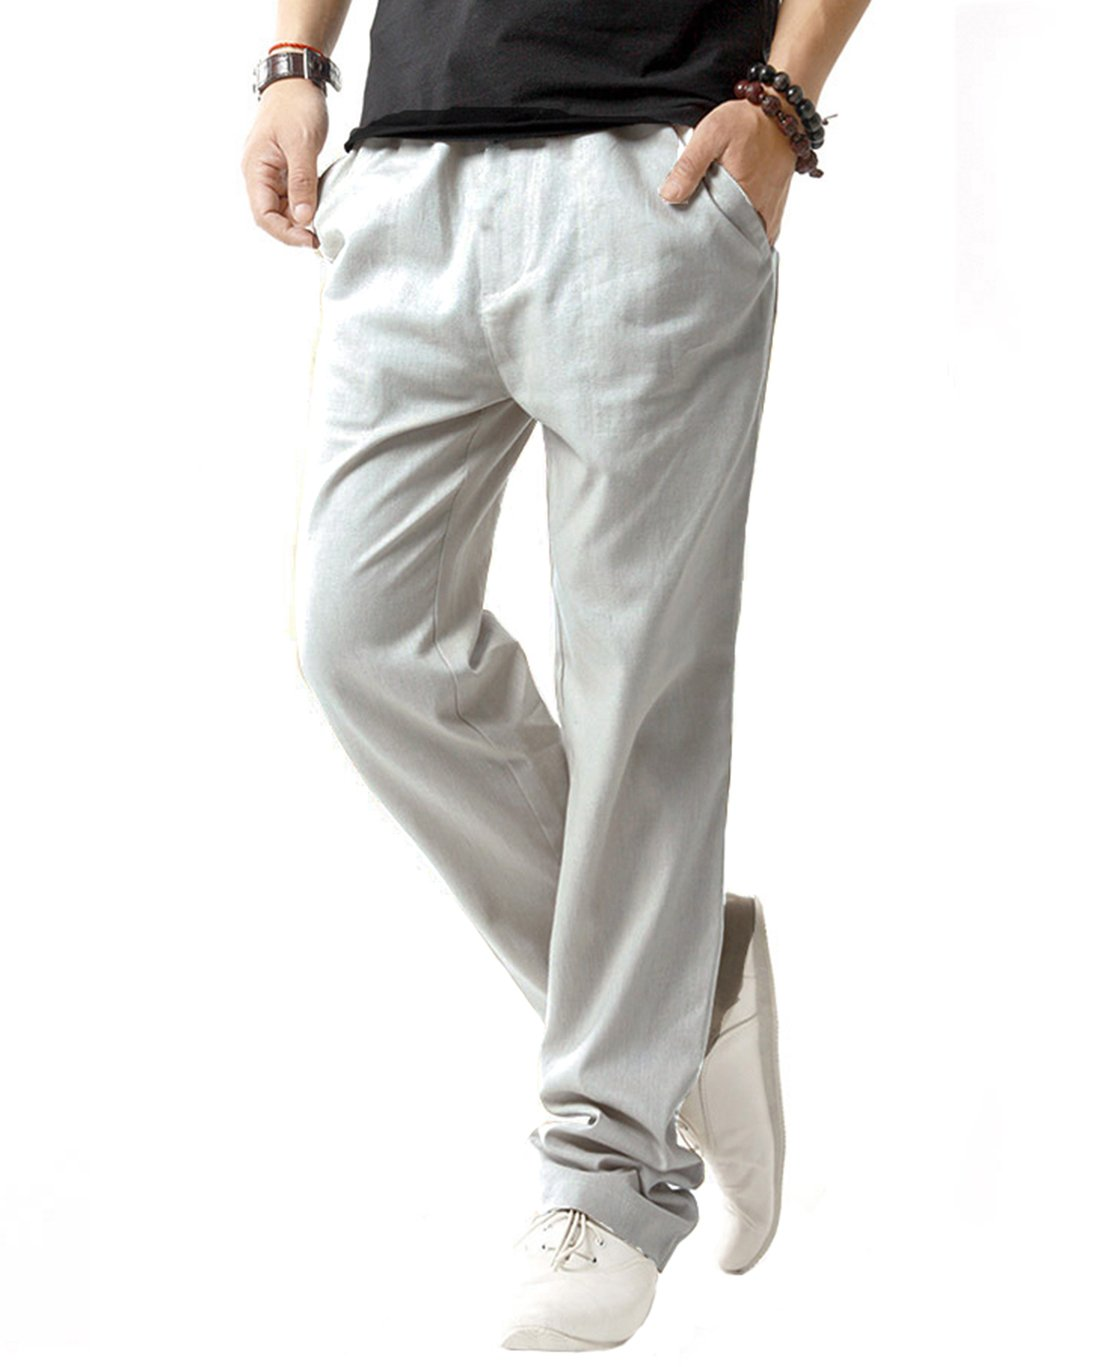 SIR7 Men's Linen Casual Lightweight Drawstrintg Elastic Waist Summer Beach Pants Light Grey 2L by SIR7 (Image #1)